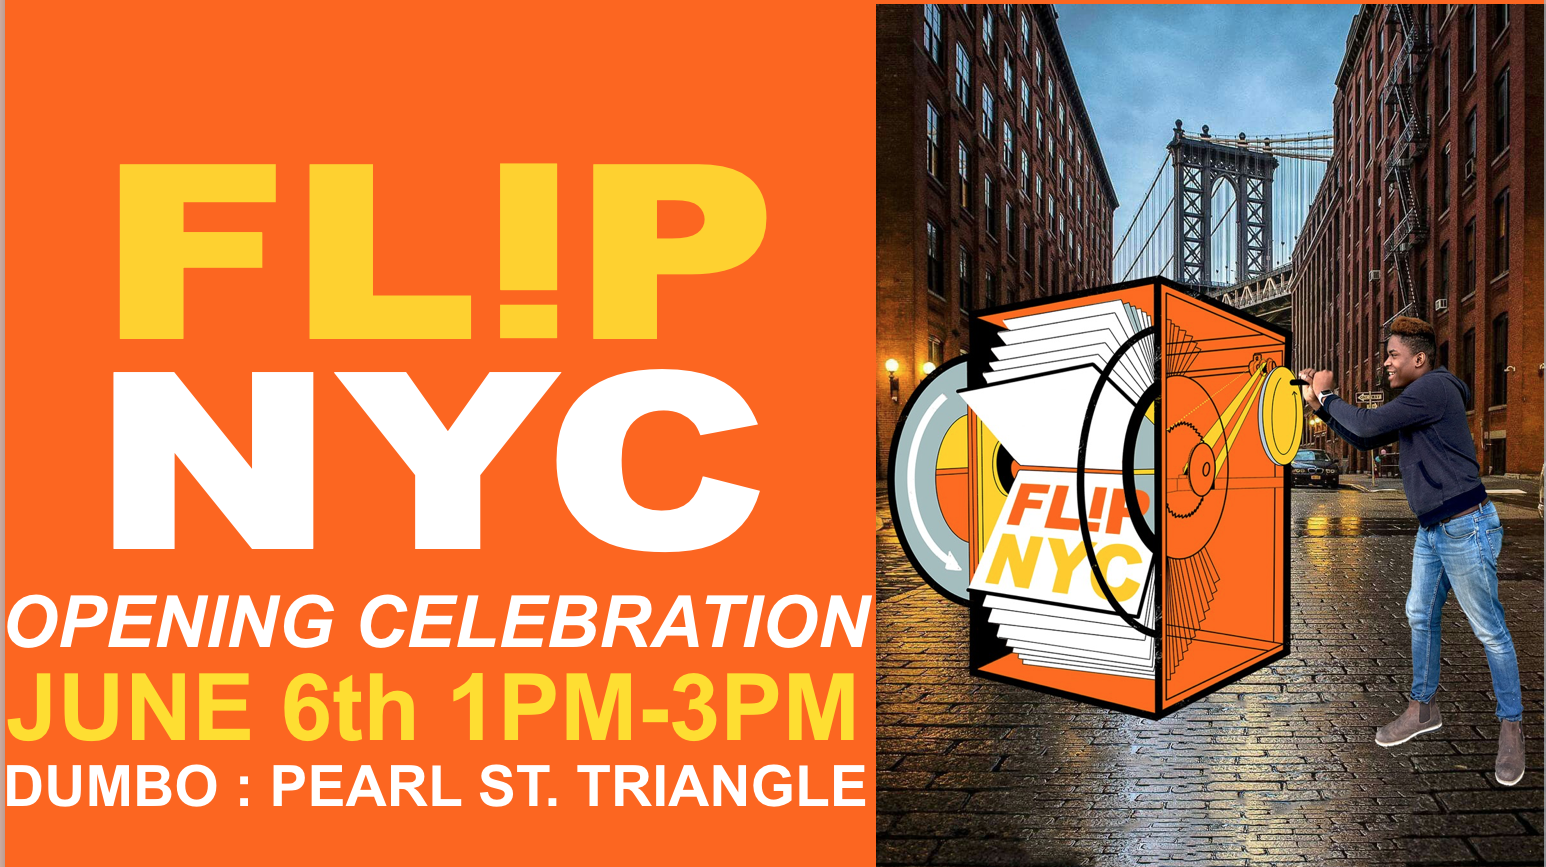 The big day for the  NYC Beam Project  is here! Join us to celebrate FlipNYC at the Pearl Street Triangle in DUMBO. Up-to-date details and photos on our  Facebook event page  and follow us on Instagram  @beamcenter